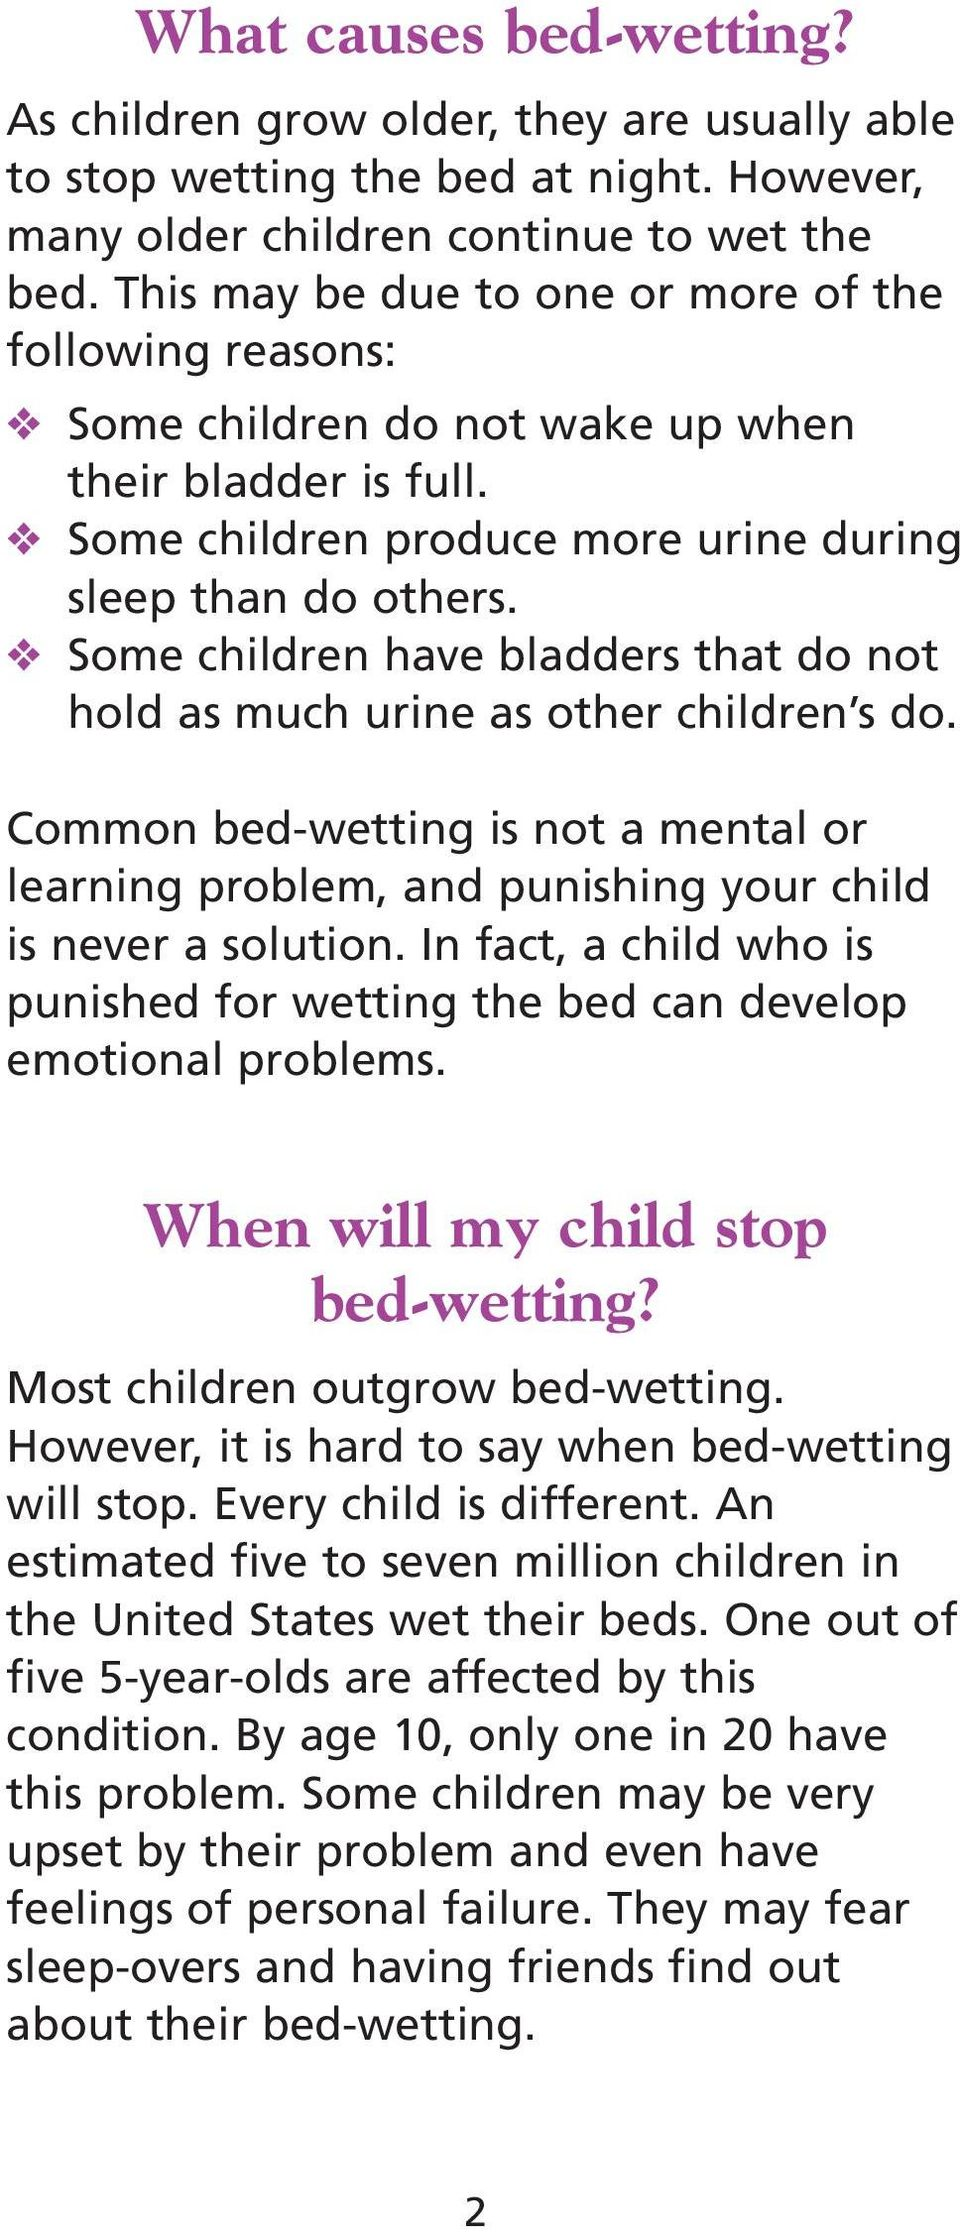 Some children have bladders that do not hold as much urine as other children s do. Common bed-wetting is not a mental or learning problem, and punishing your child is never a solution.